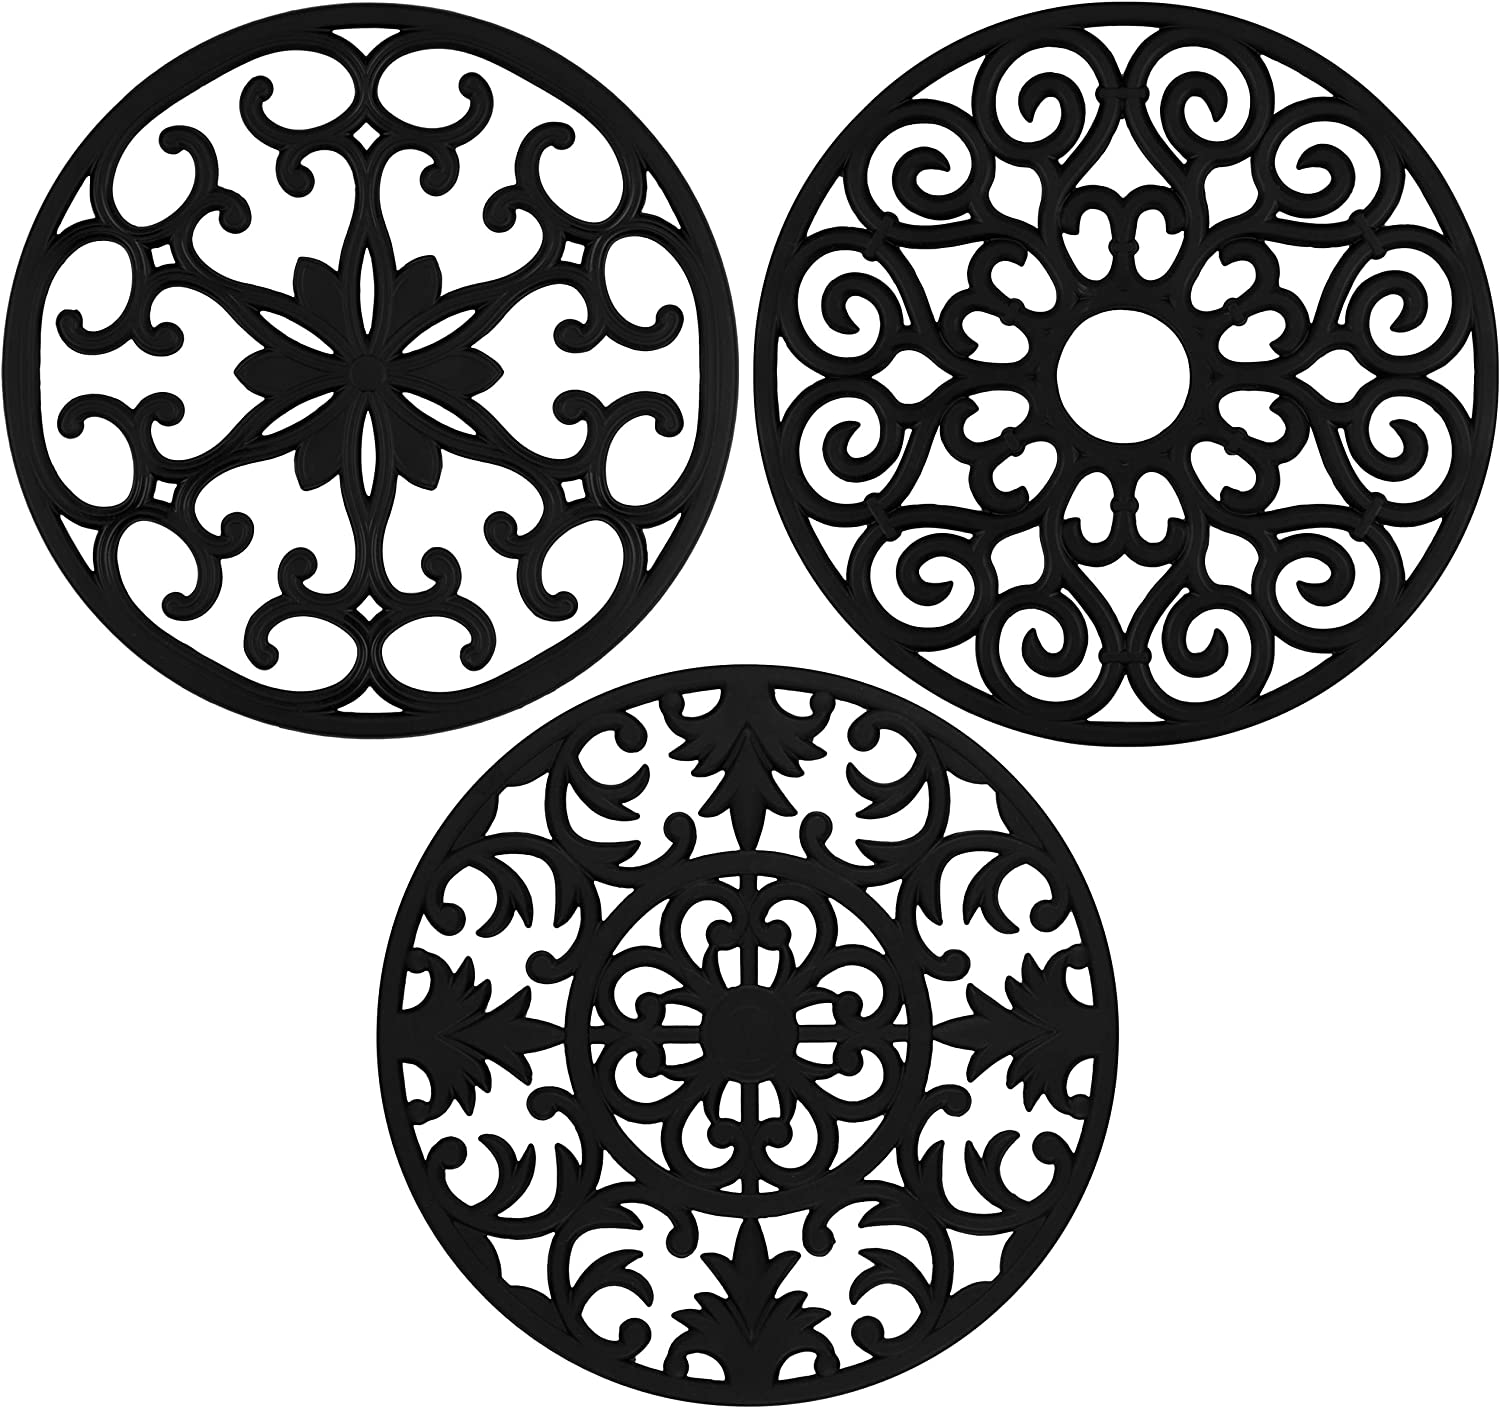 """gasaré, Extra Large, Extra Thick, 10"""" Silicone Trivets for Pots, Pans and Hot Dishes, Trivet Mat, Non-Slip, Dishwasher Safe, for Countertops, Dining Tables, 10 x 3/8 inches, Set of 3, Black"""